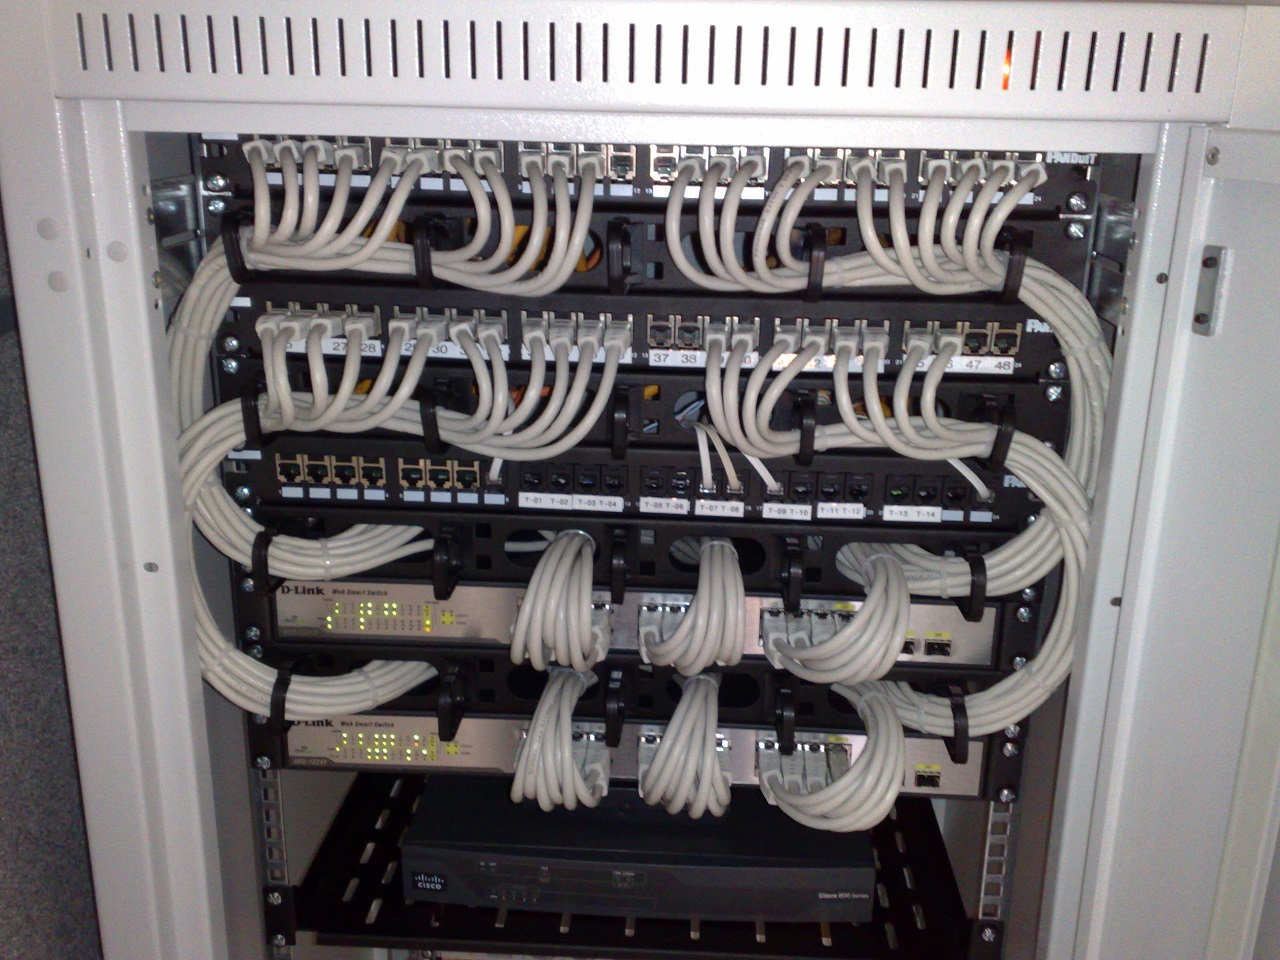 Patch panel - Wikipedia